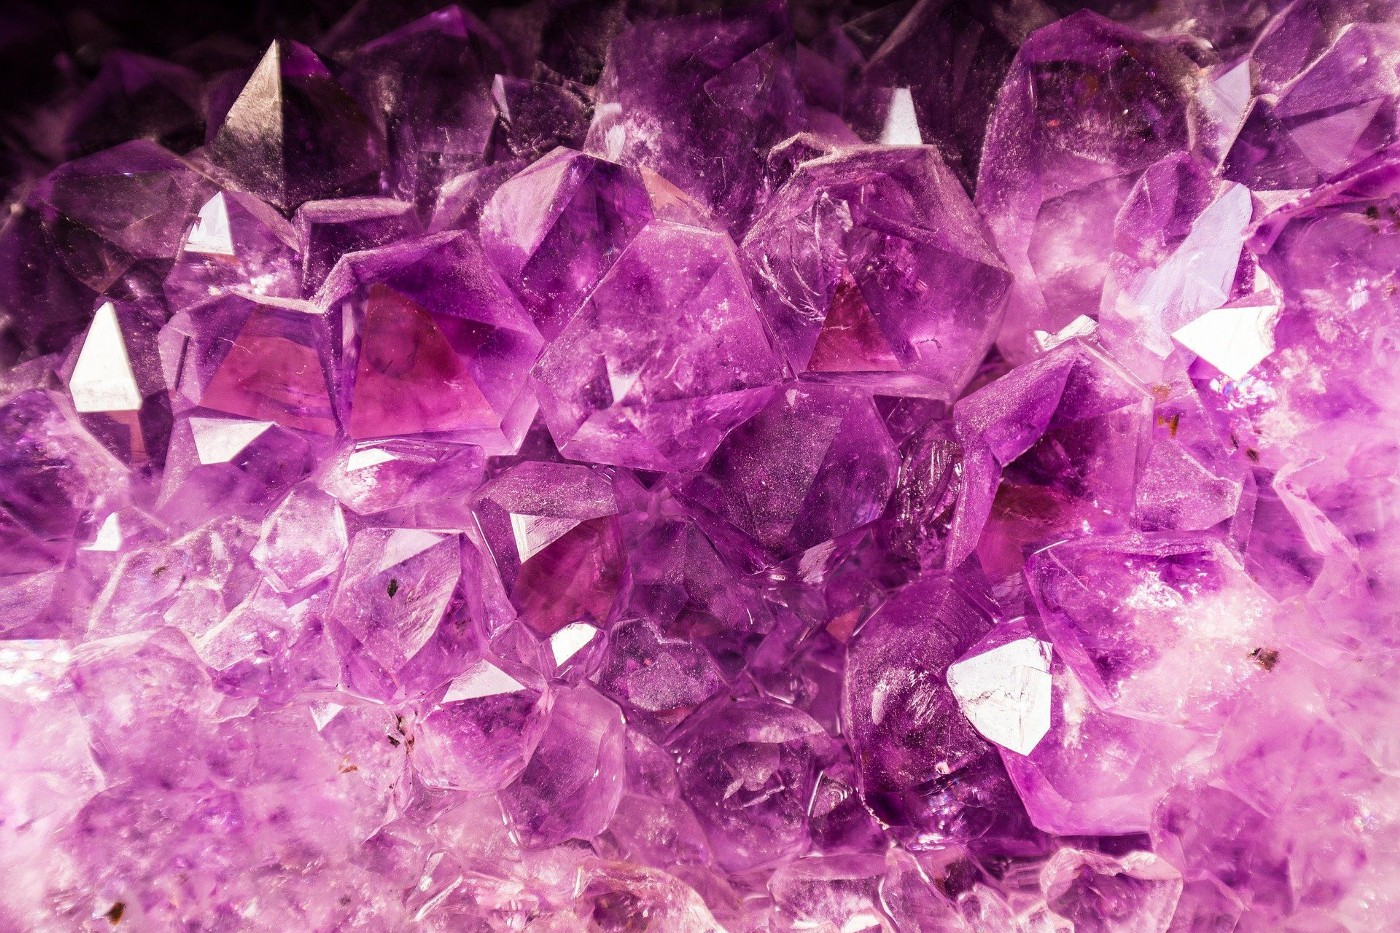 Crystals on a mouse pad…